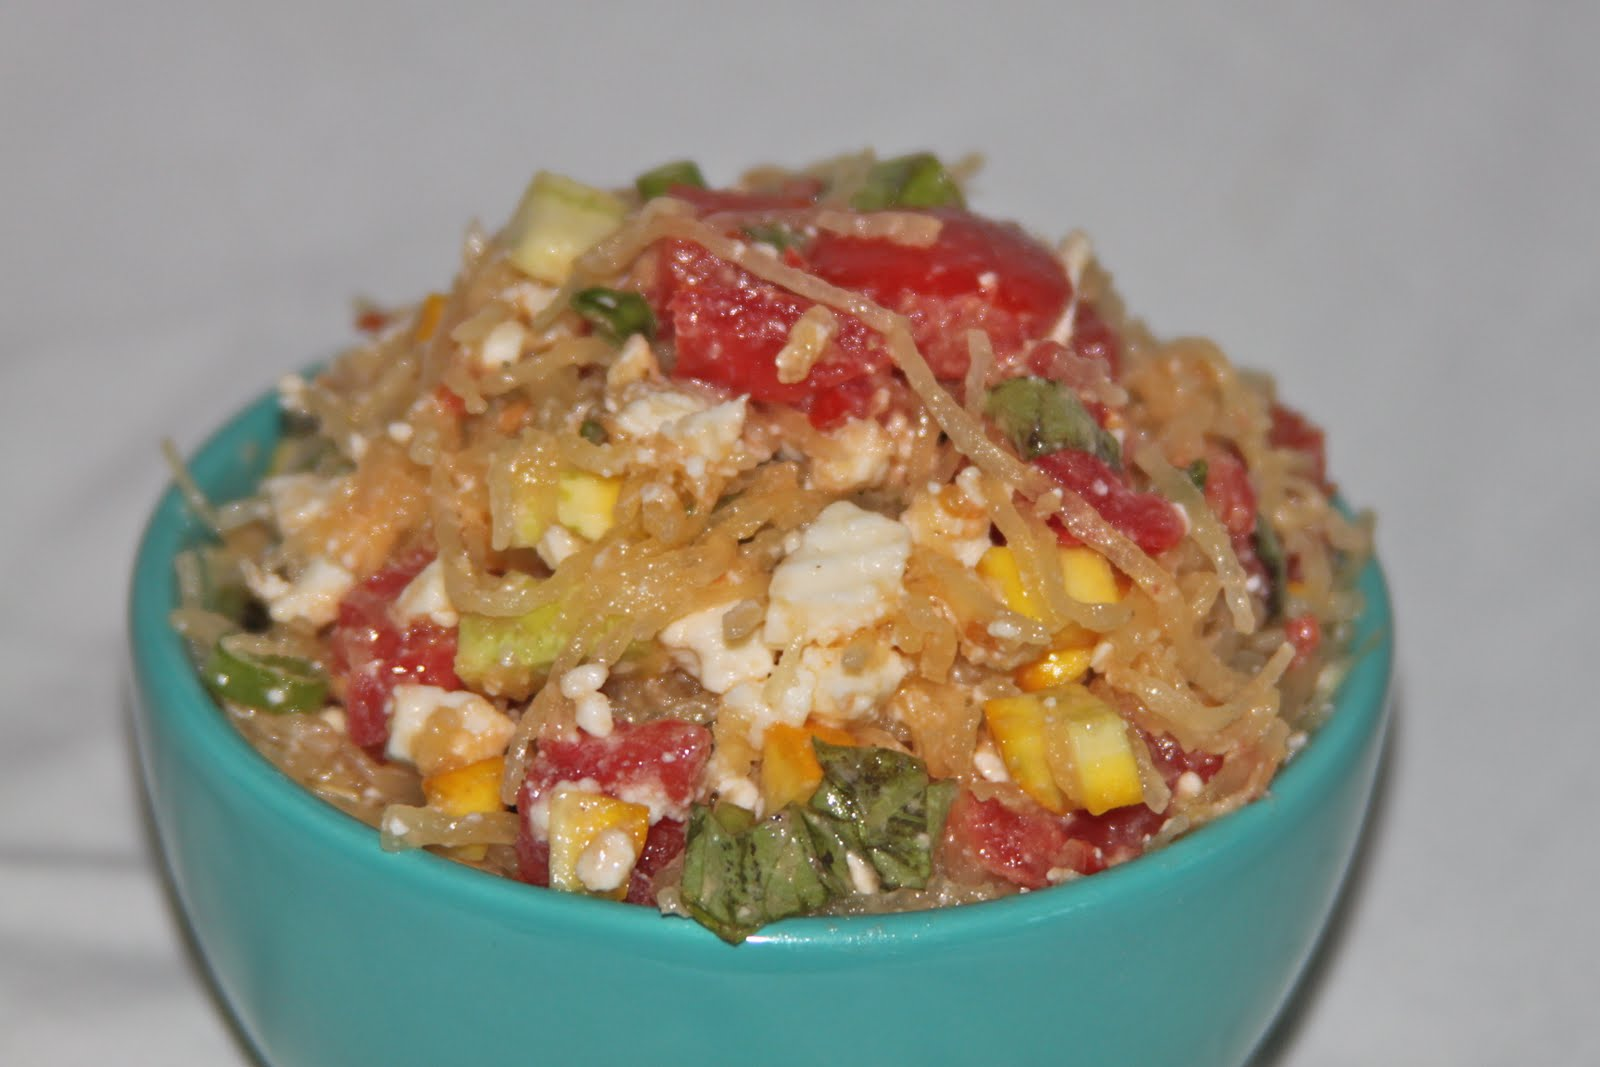 cooking out of the box: spaghetti squash salad with tomato and basil